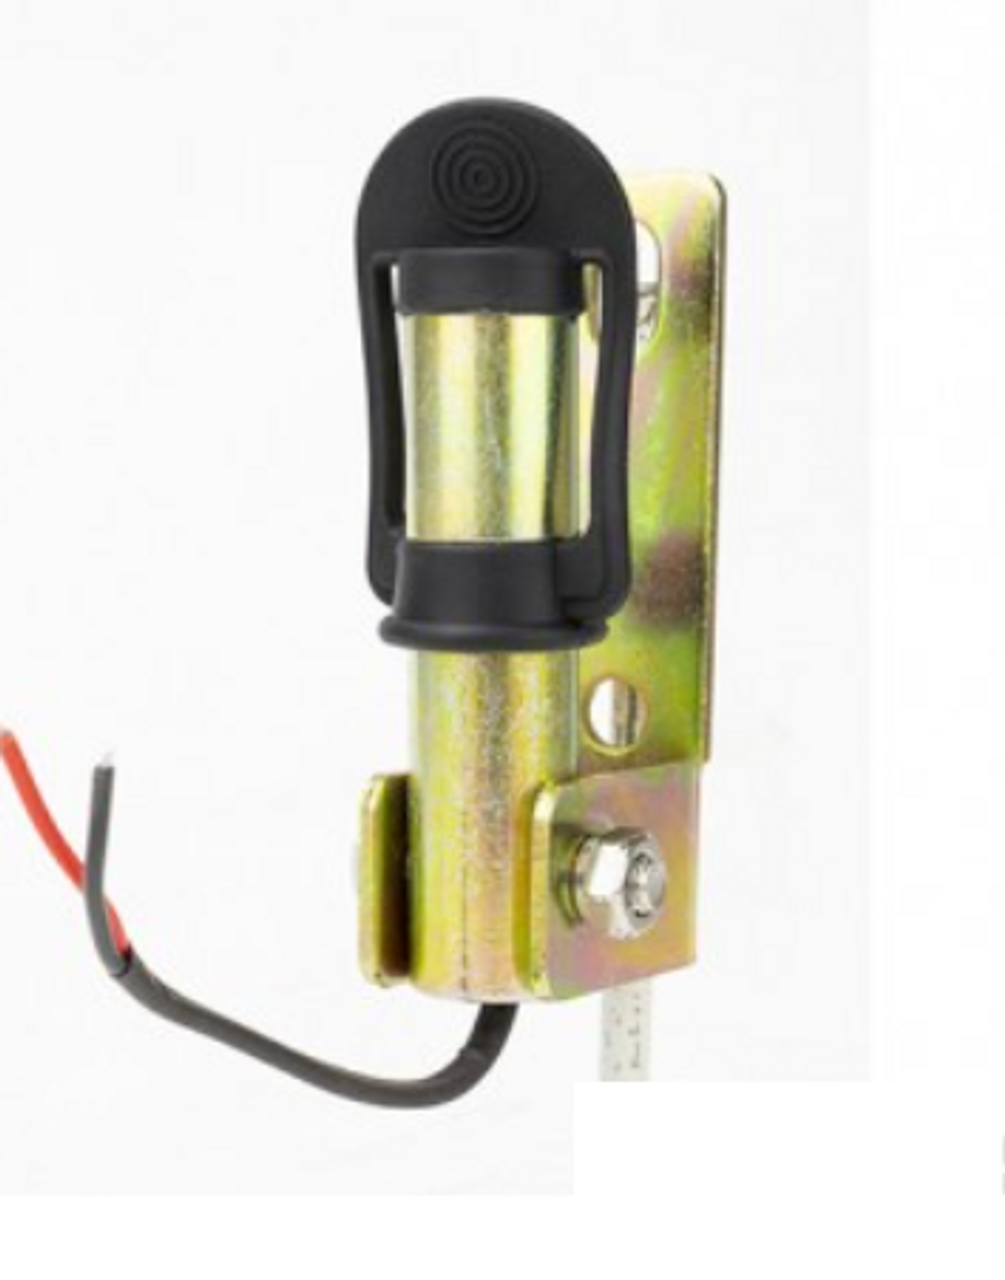 DIN Pole Mount Bolt On and Fold Away Style for your Safety Beacon with Power Leads